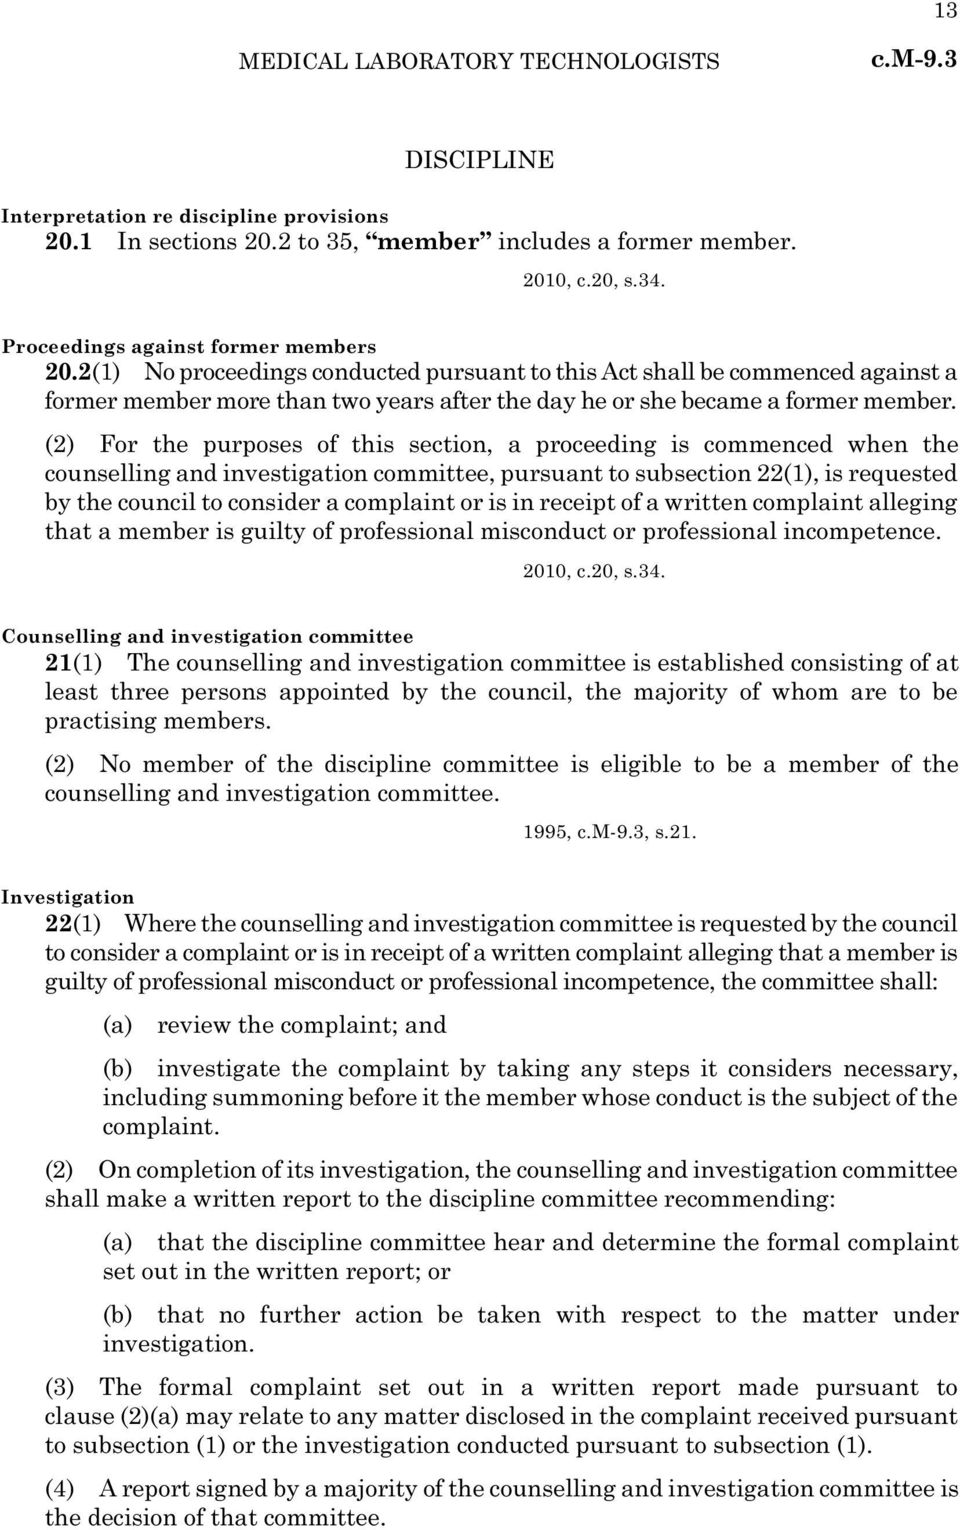 (2) For the purposes of this section, a proceeding is commenced when the counselling and investigation committee, pursuant to subsection 22(1), is requested by the council to consider a complaint or